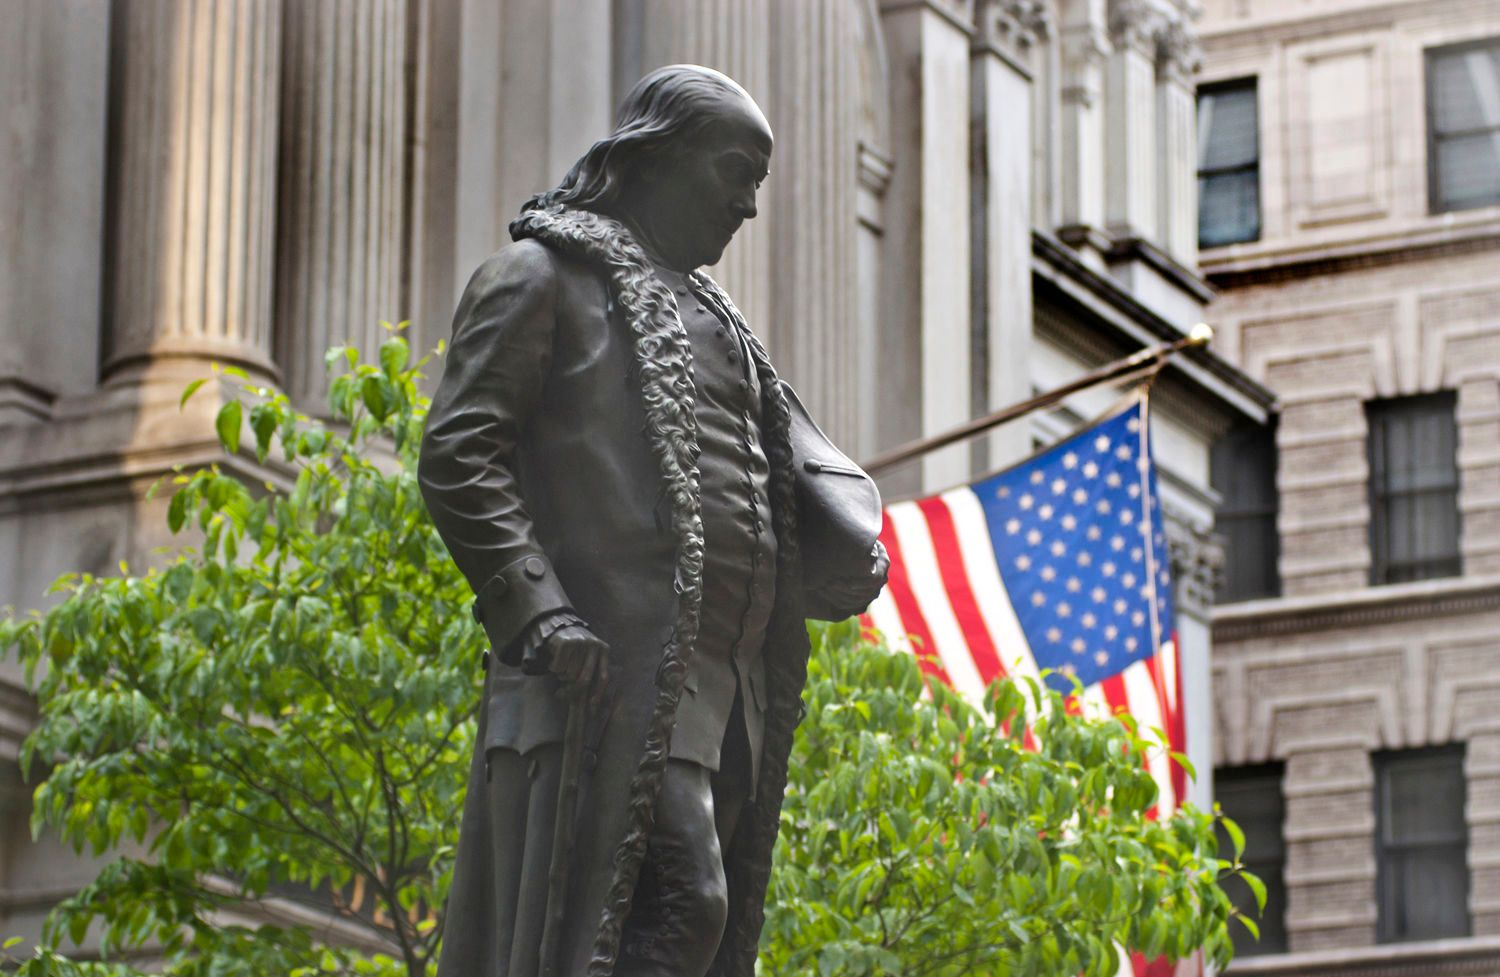 Ben Franklin Statue, Boston, MA